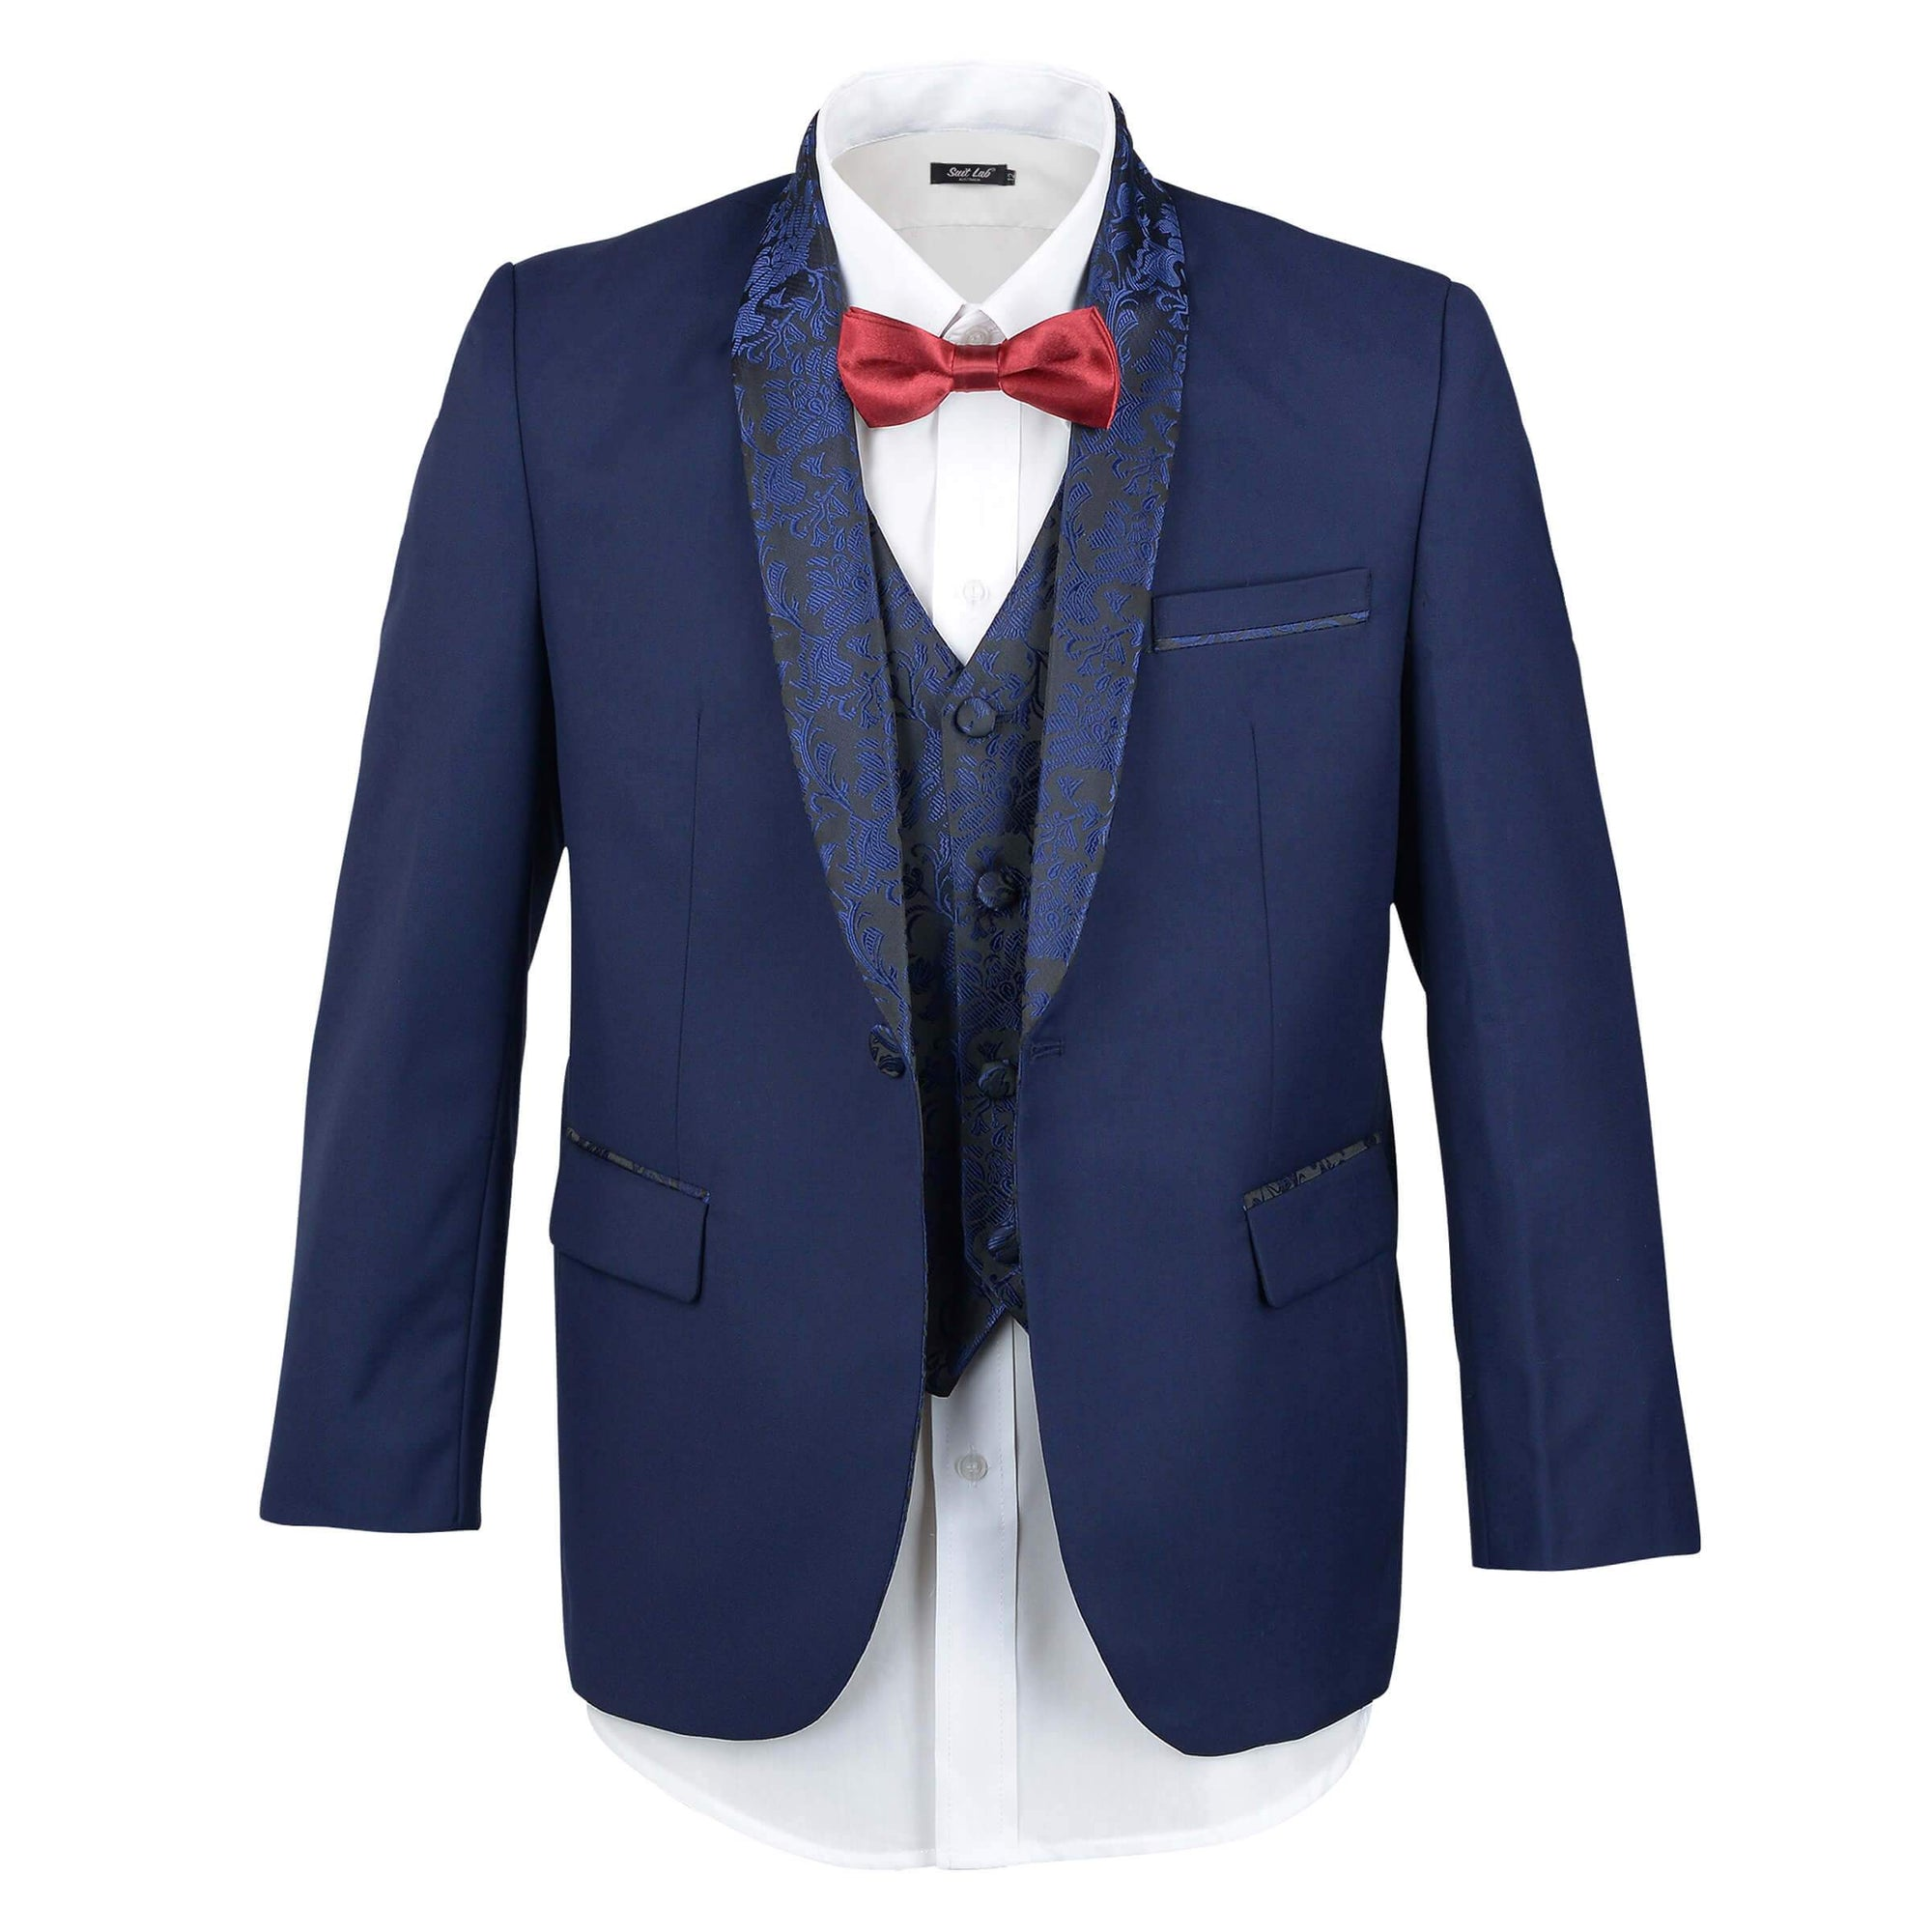 Boys Dark Navy Embroidery Shawl Lapel Tuxedo - SLIM FIT